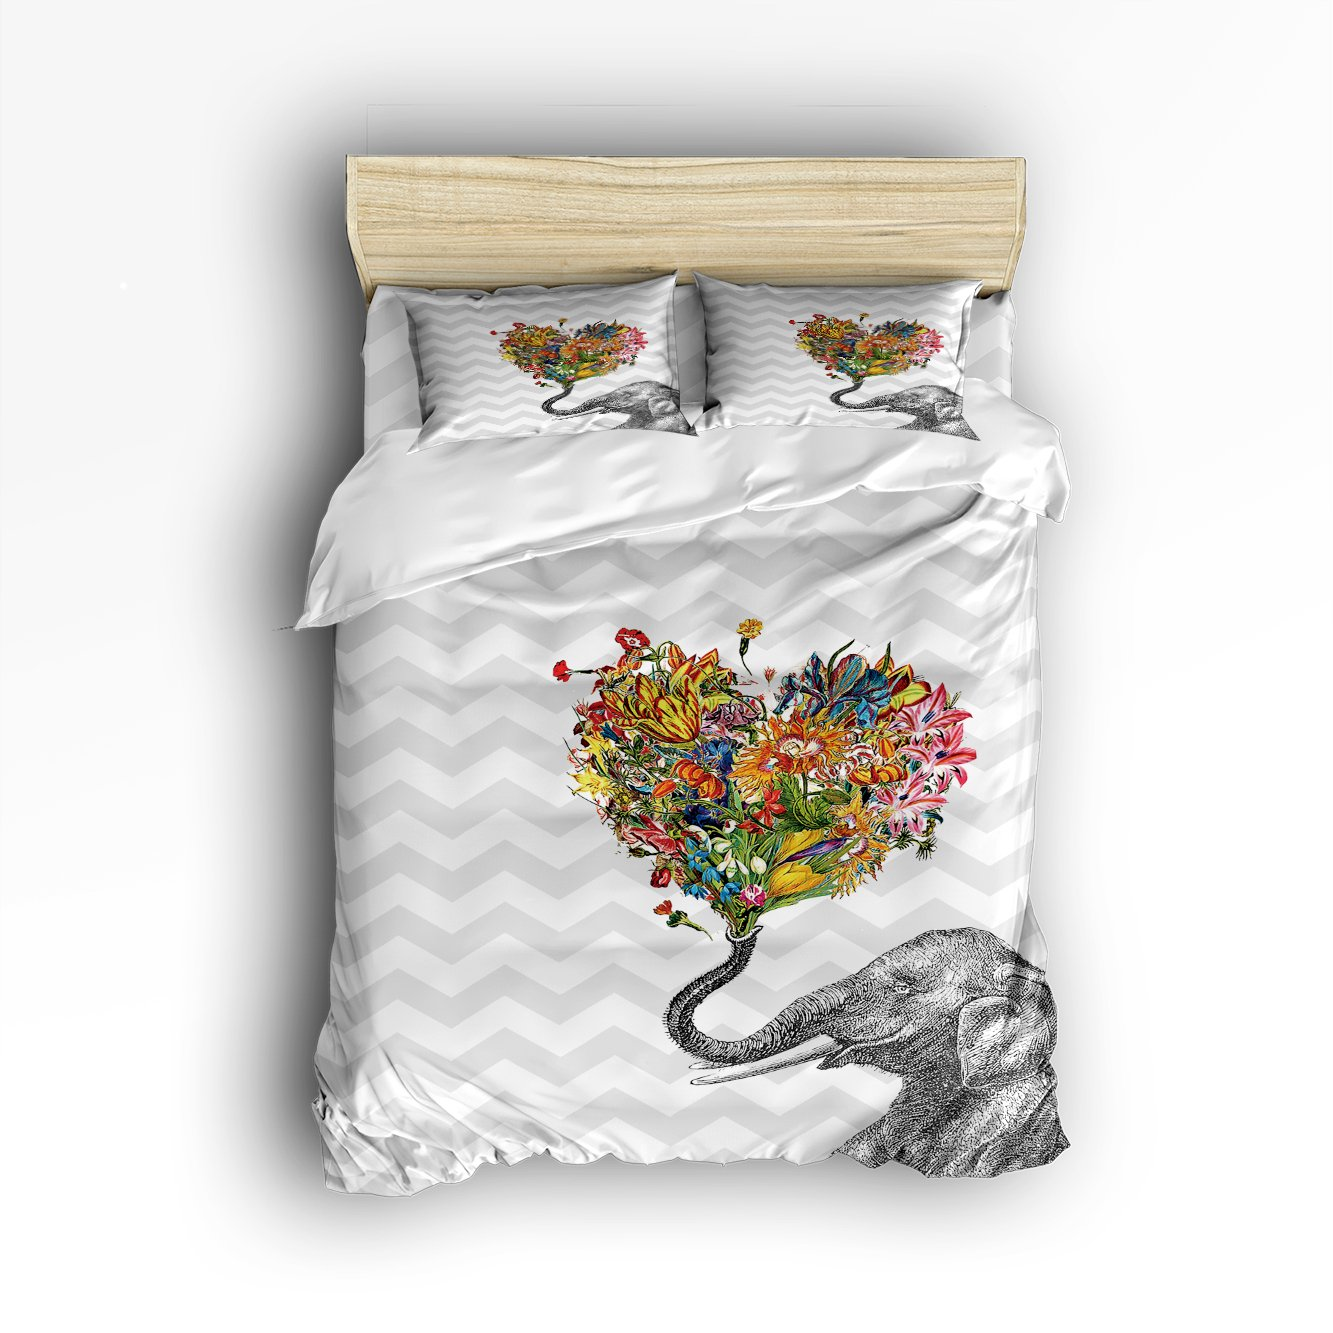 Beauty Decor Bedding 4 Piece bed Set Comfortable Soft Brushed Cotton,Elephant Aztec Floral design 4 Piece Bed Sheet Set Duvet Cover Flat Sheet and 2 Pillow Cases